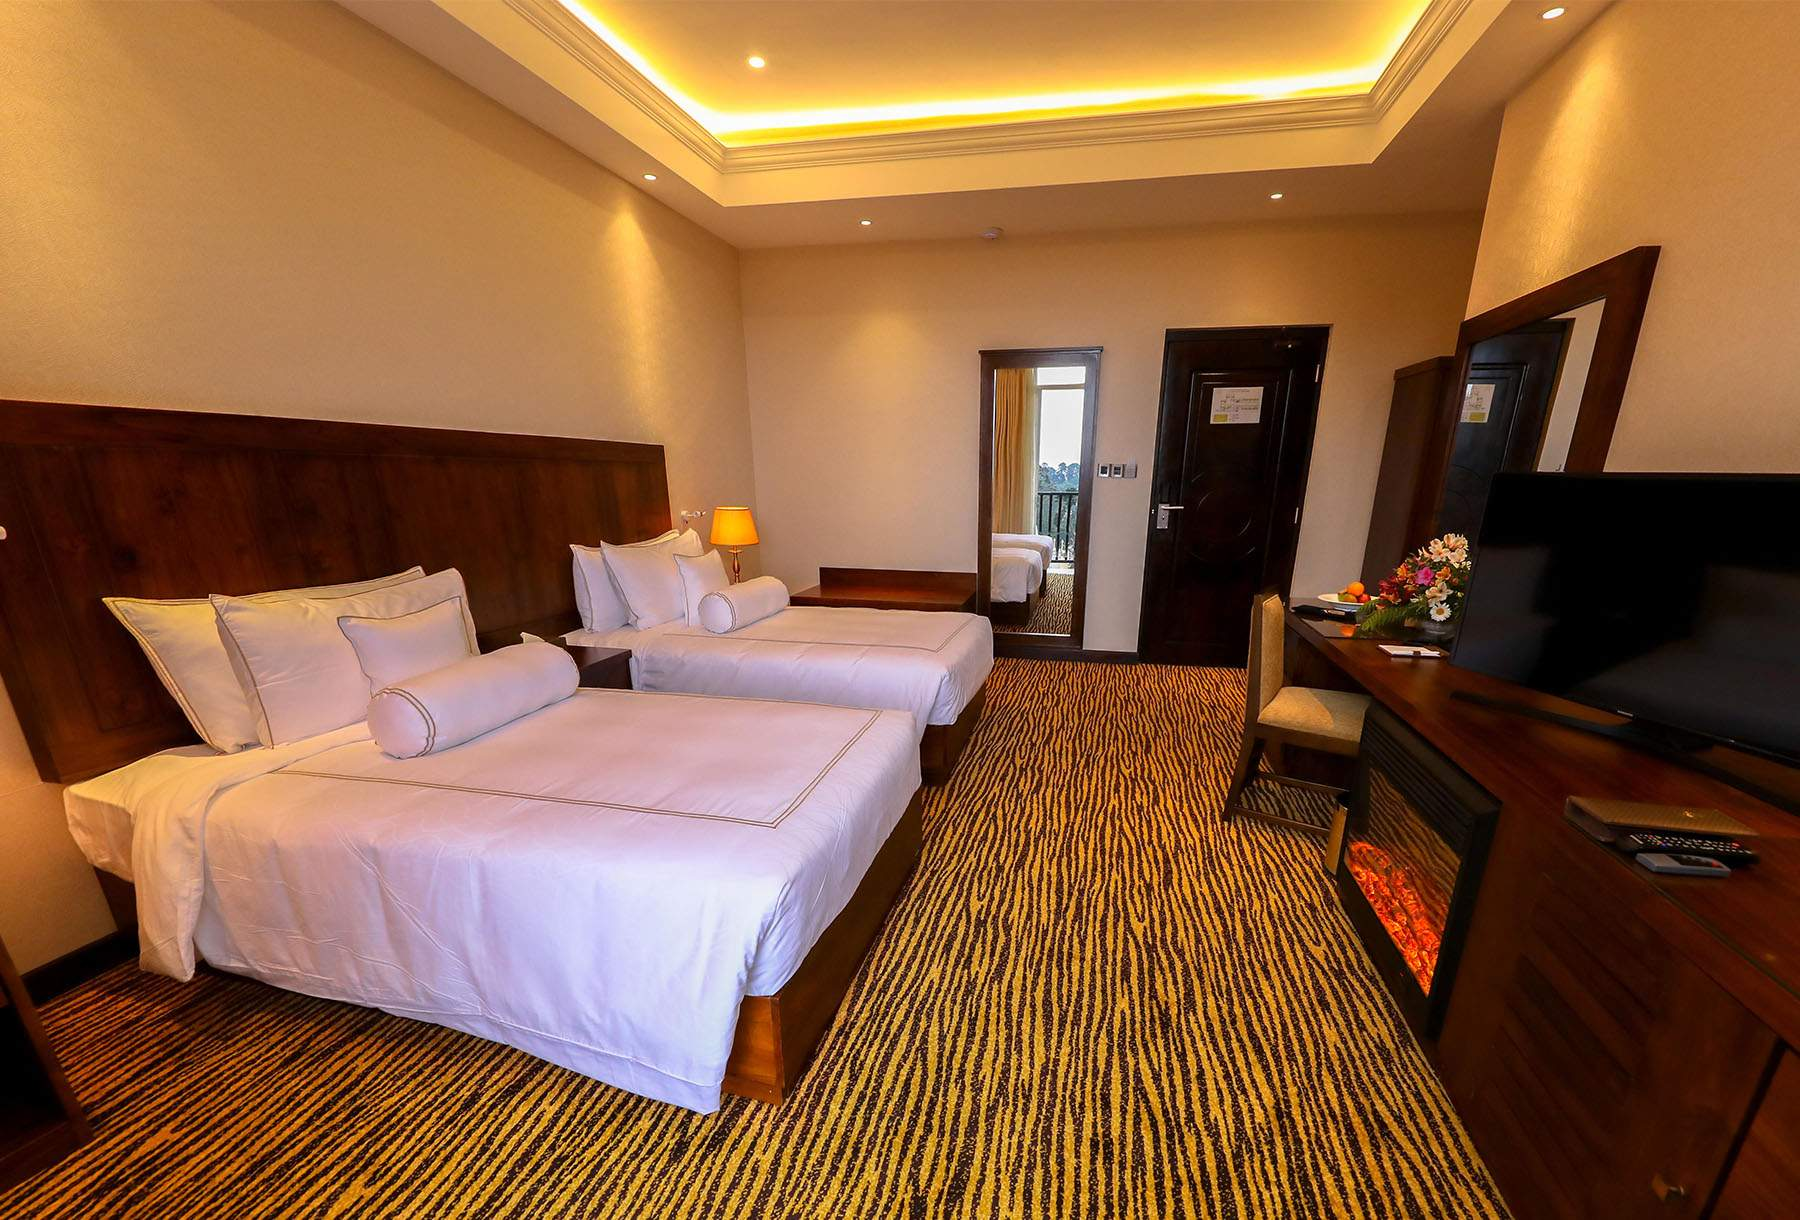 The Golden Ridge Hotel Nuwara Eliya room4.jpg